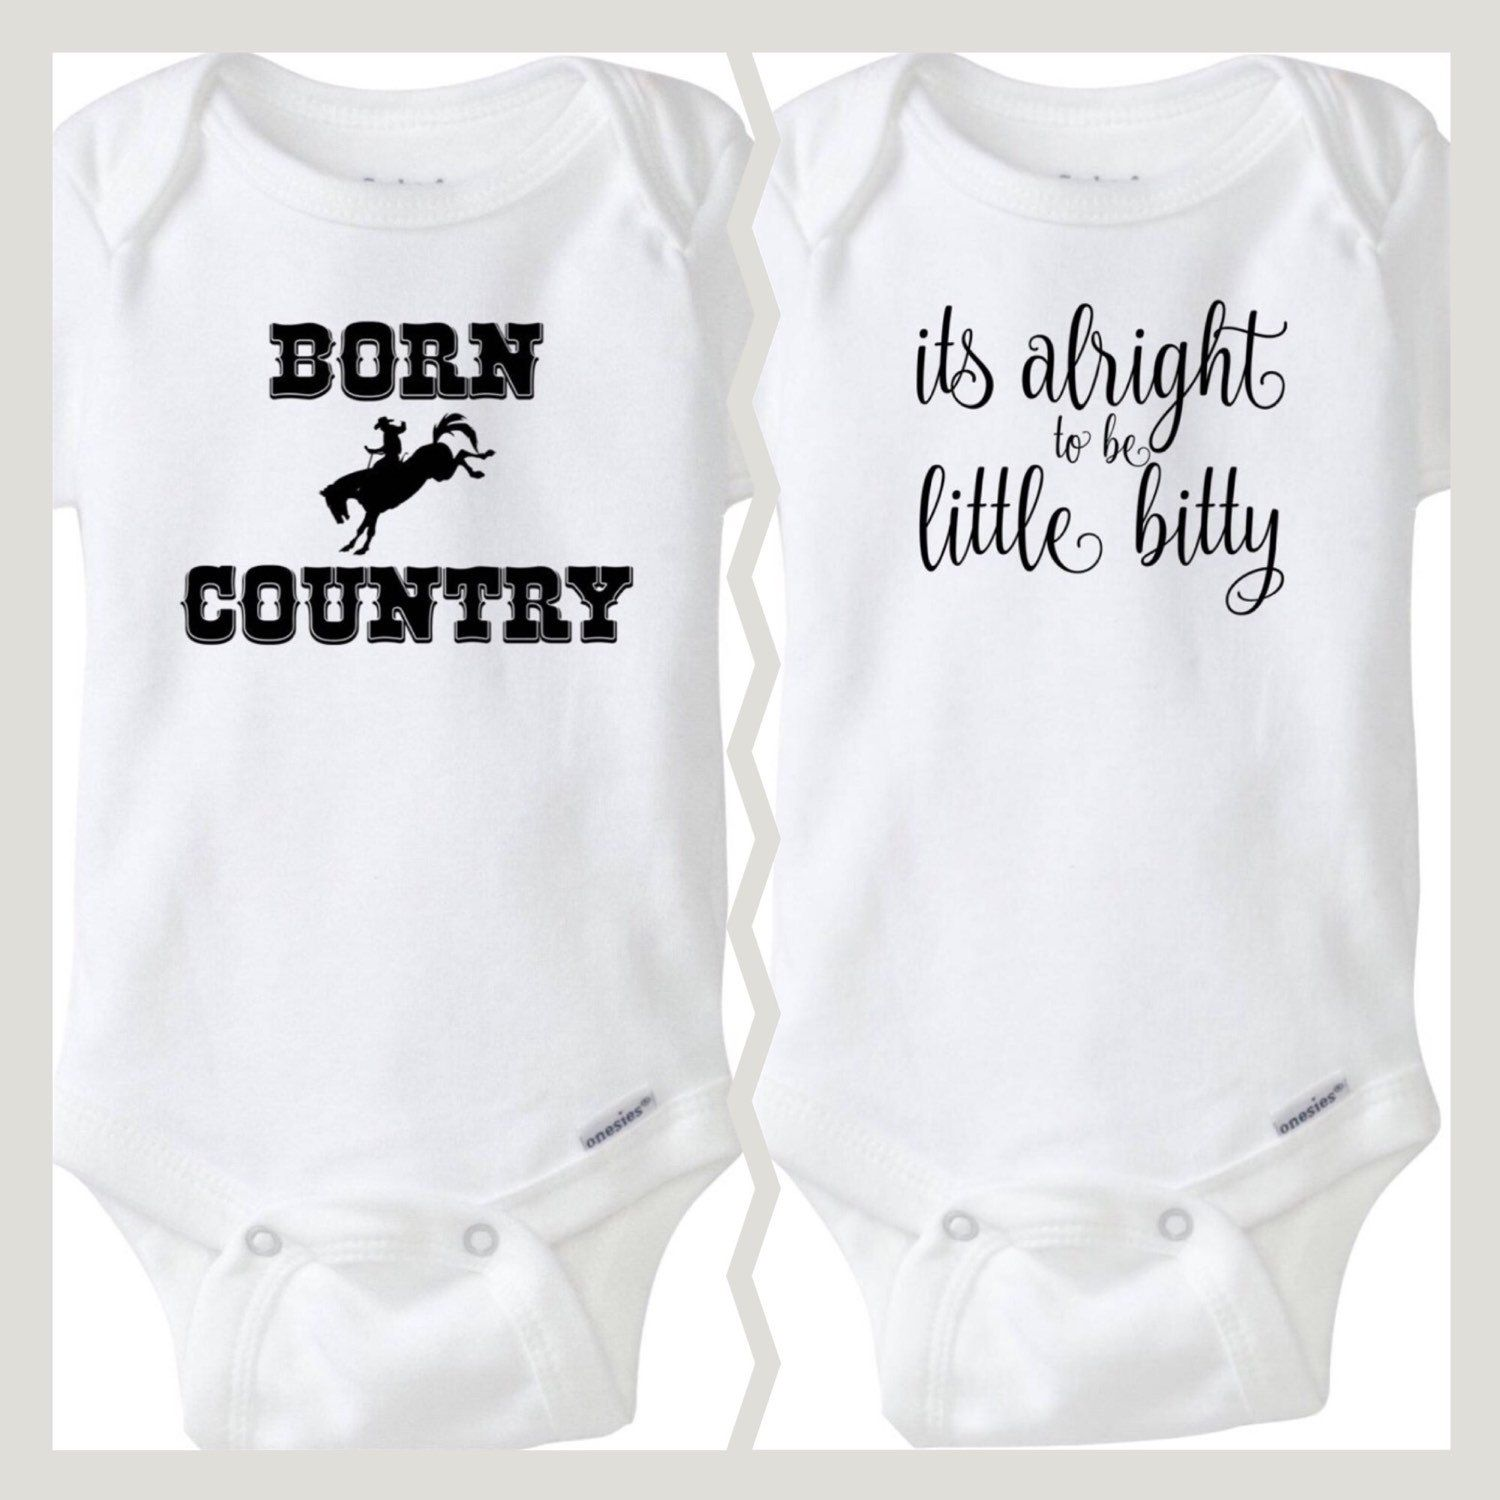 Baby Shower Gift Born Country Baby Boy esies Western Baby